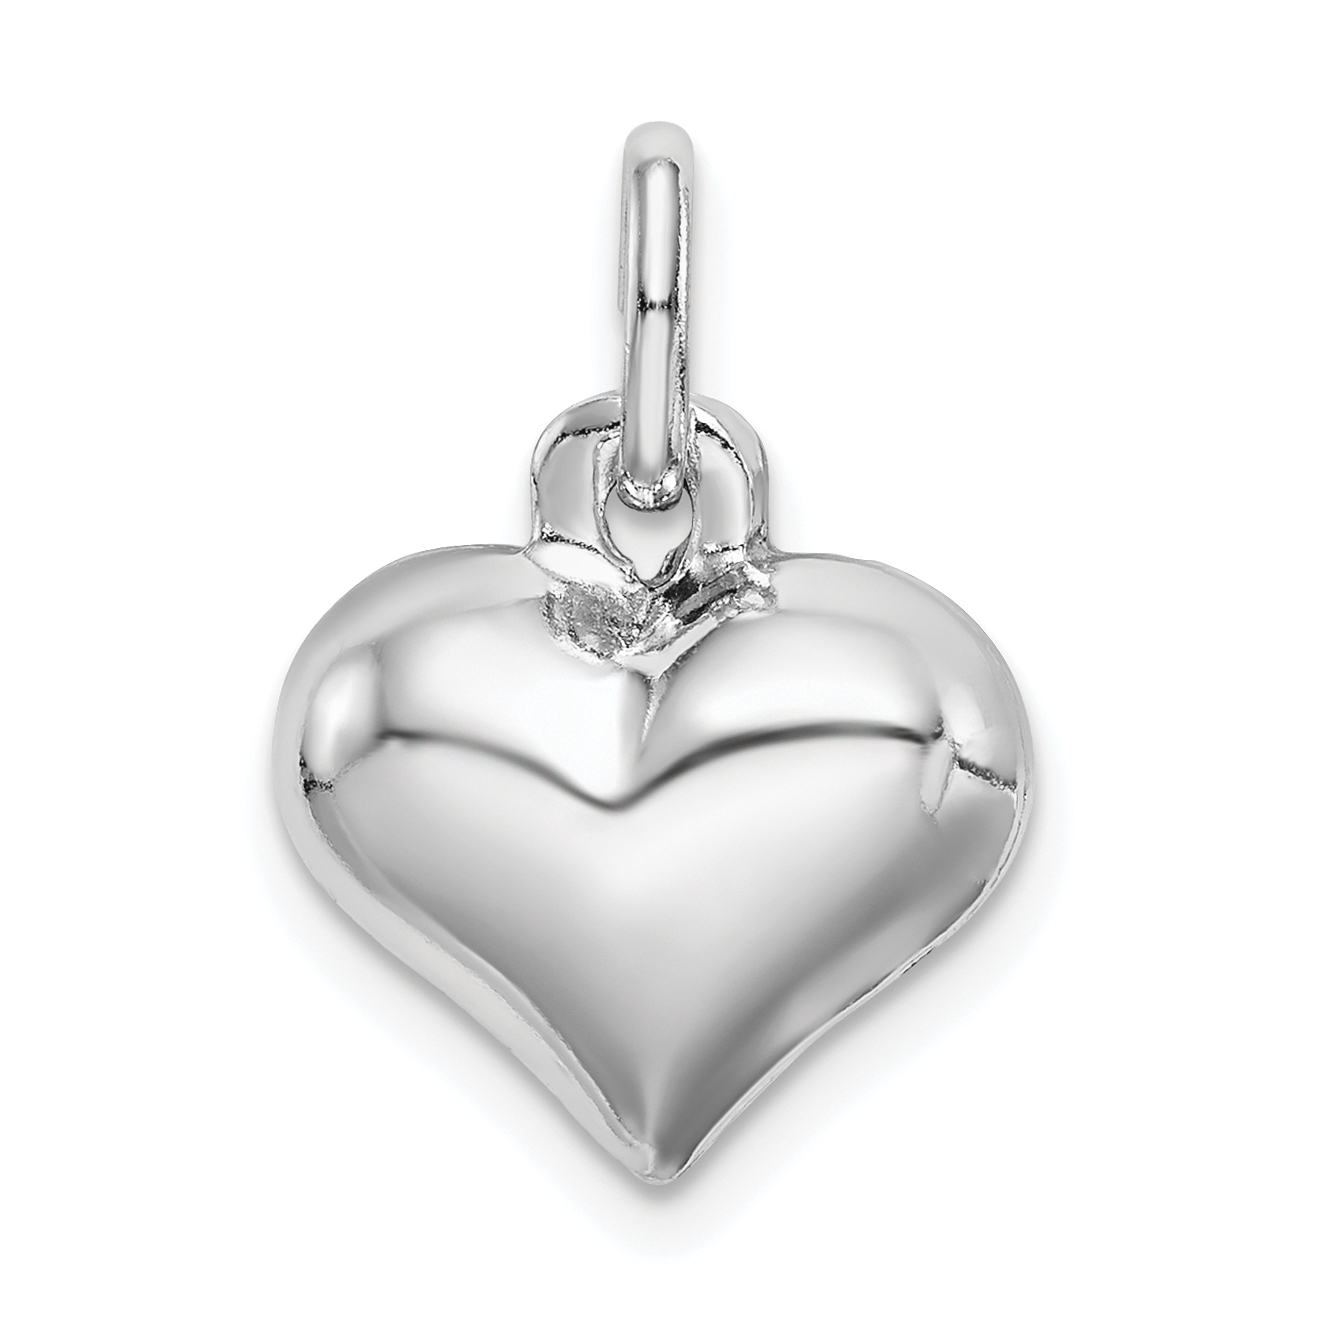 Sterling silver rhodium plated puffed heart charm weight 135 sterling silver rhodium plated puffed heart charm weight 135 grams length 14mm width 13mm aloadofball Images